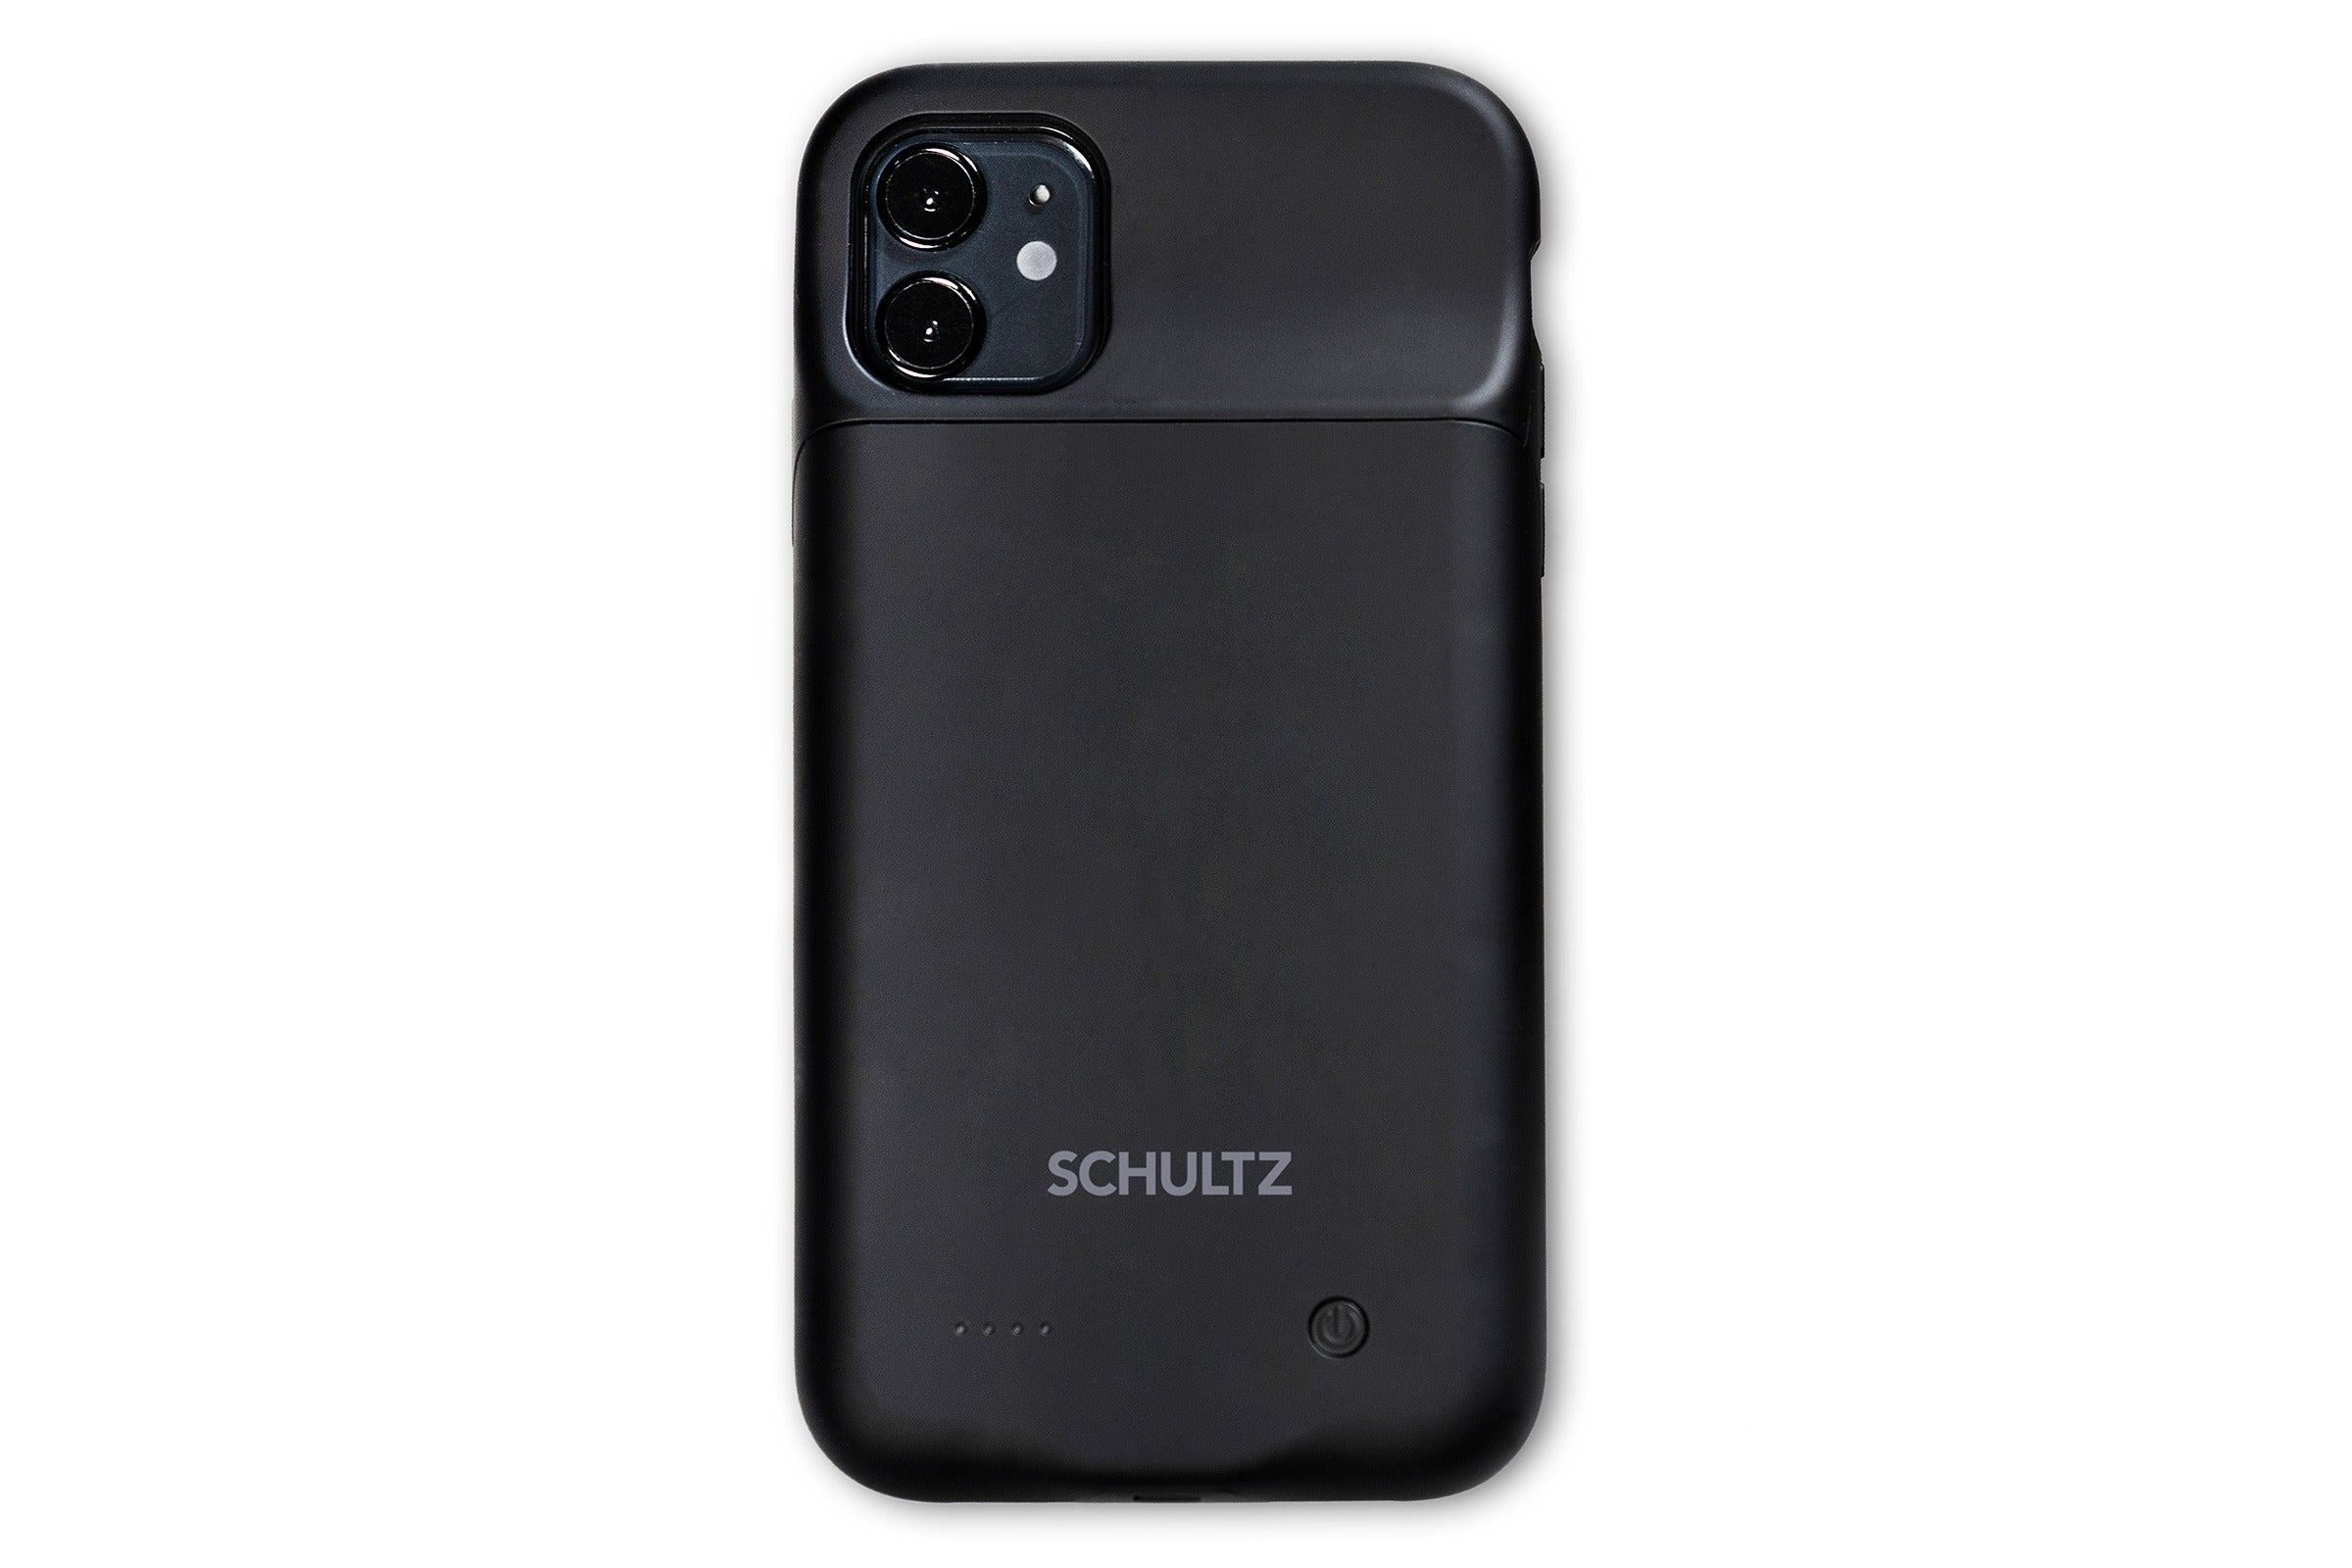 Schultz SmartPower Battery Case for iPhone 11